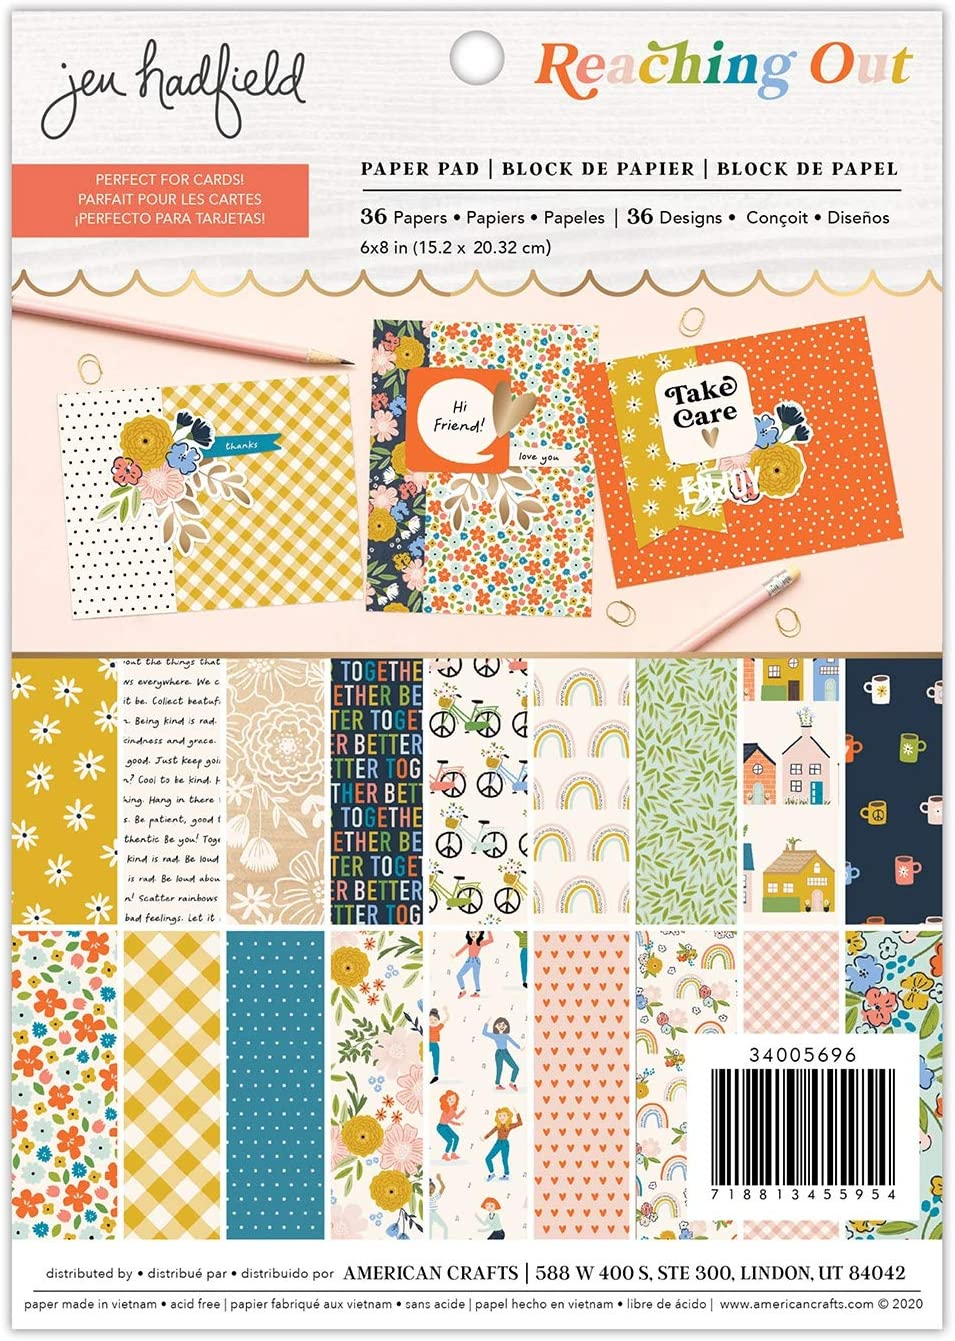 American Crafts Paper 6X8 Large discharge sale Cheap PAD Jen Hadfield Out Reaching